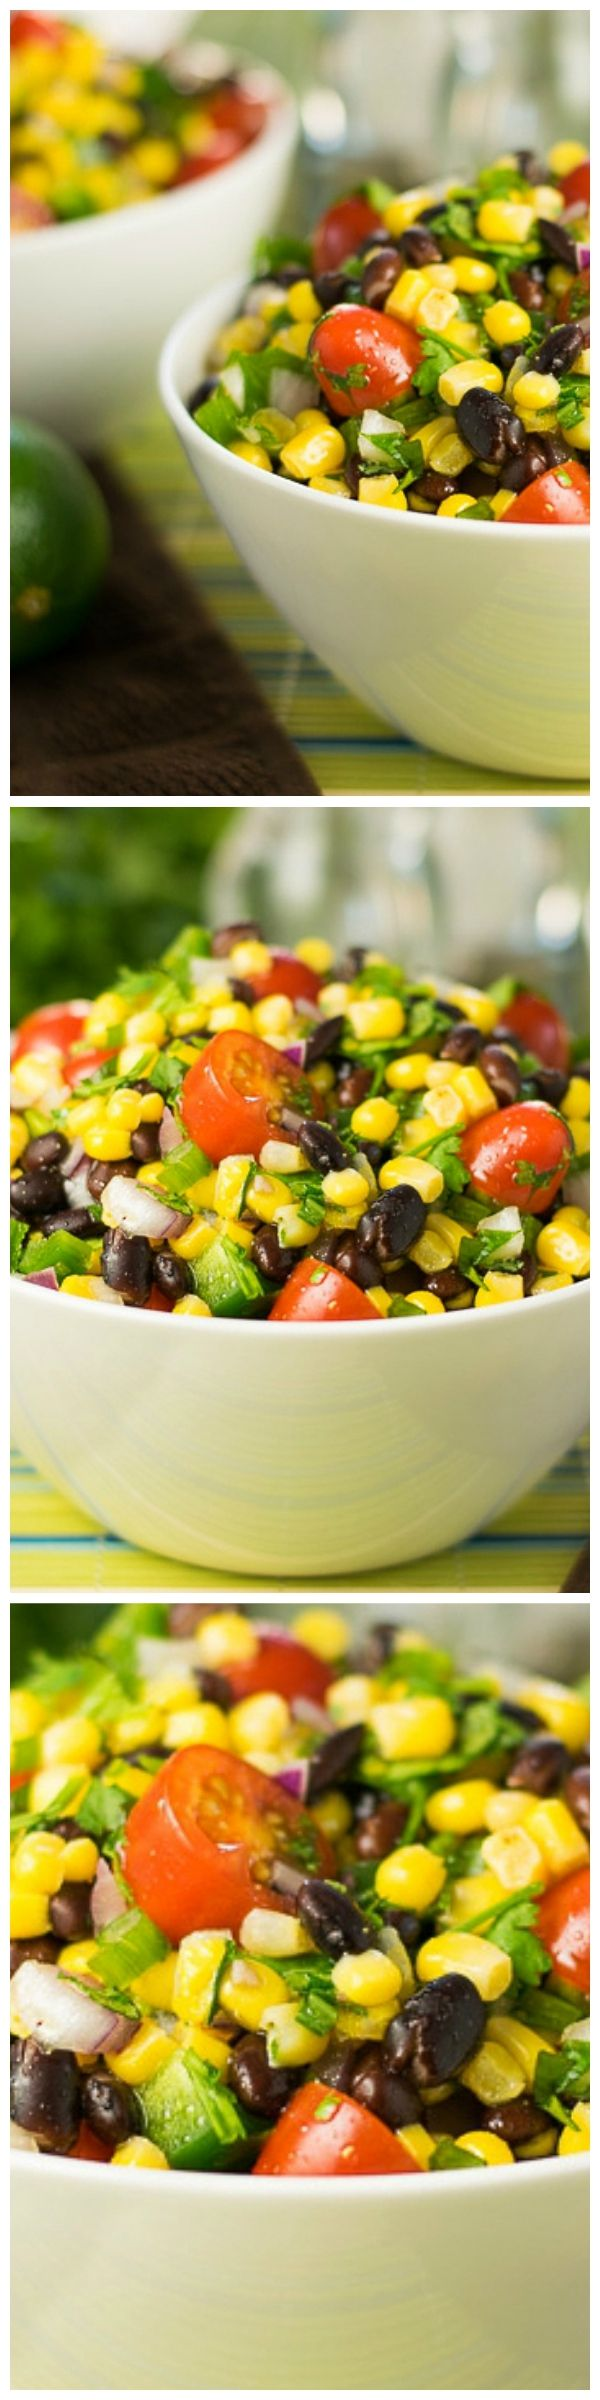 This black bean and corn salad recipe with lime juice is the perfect penance for all those hotdogs and burgers we tend to indulge in all summer long!